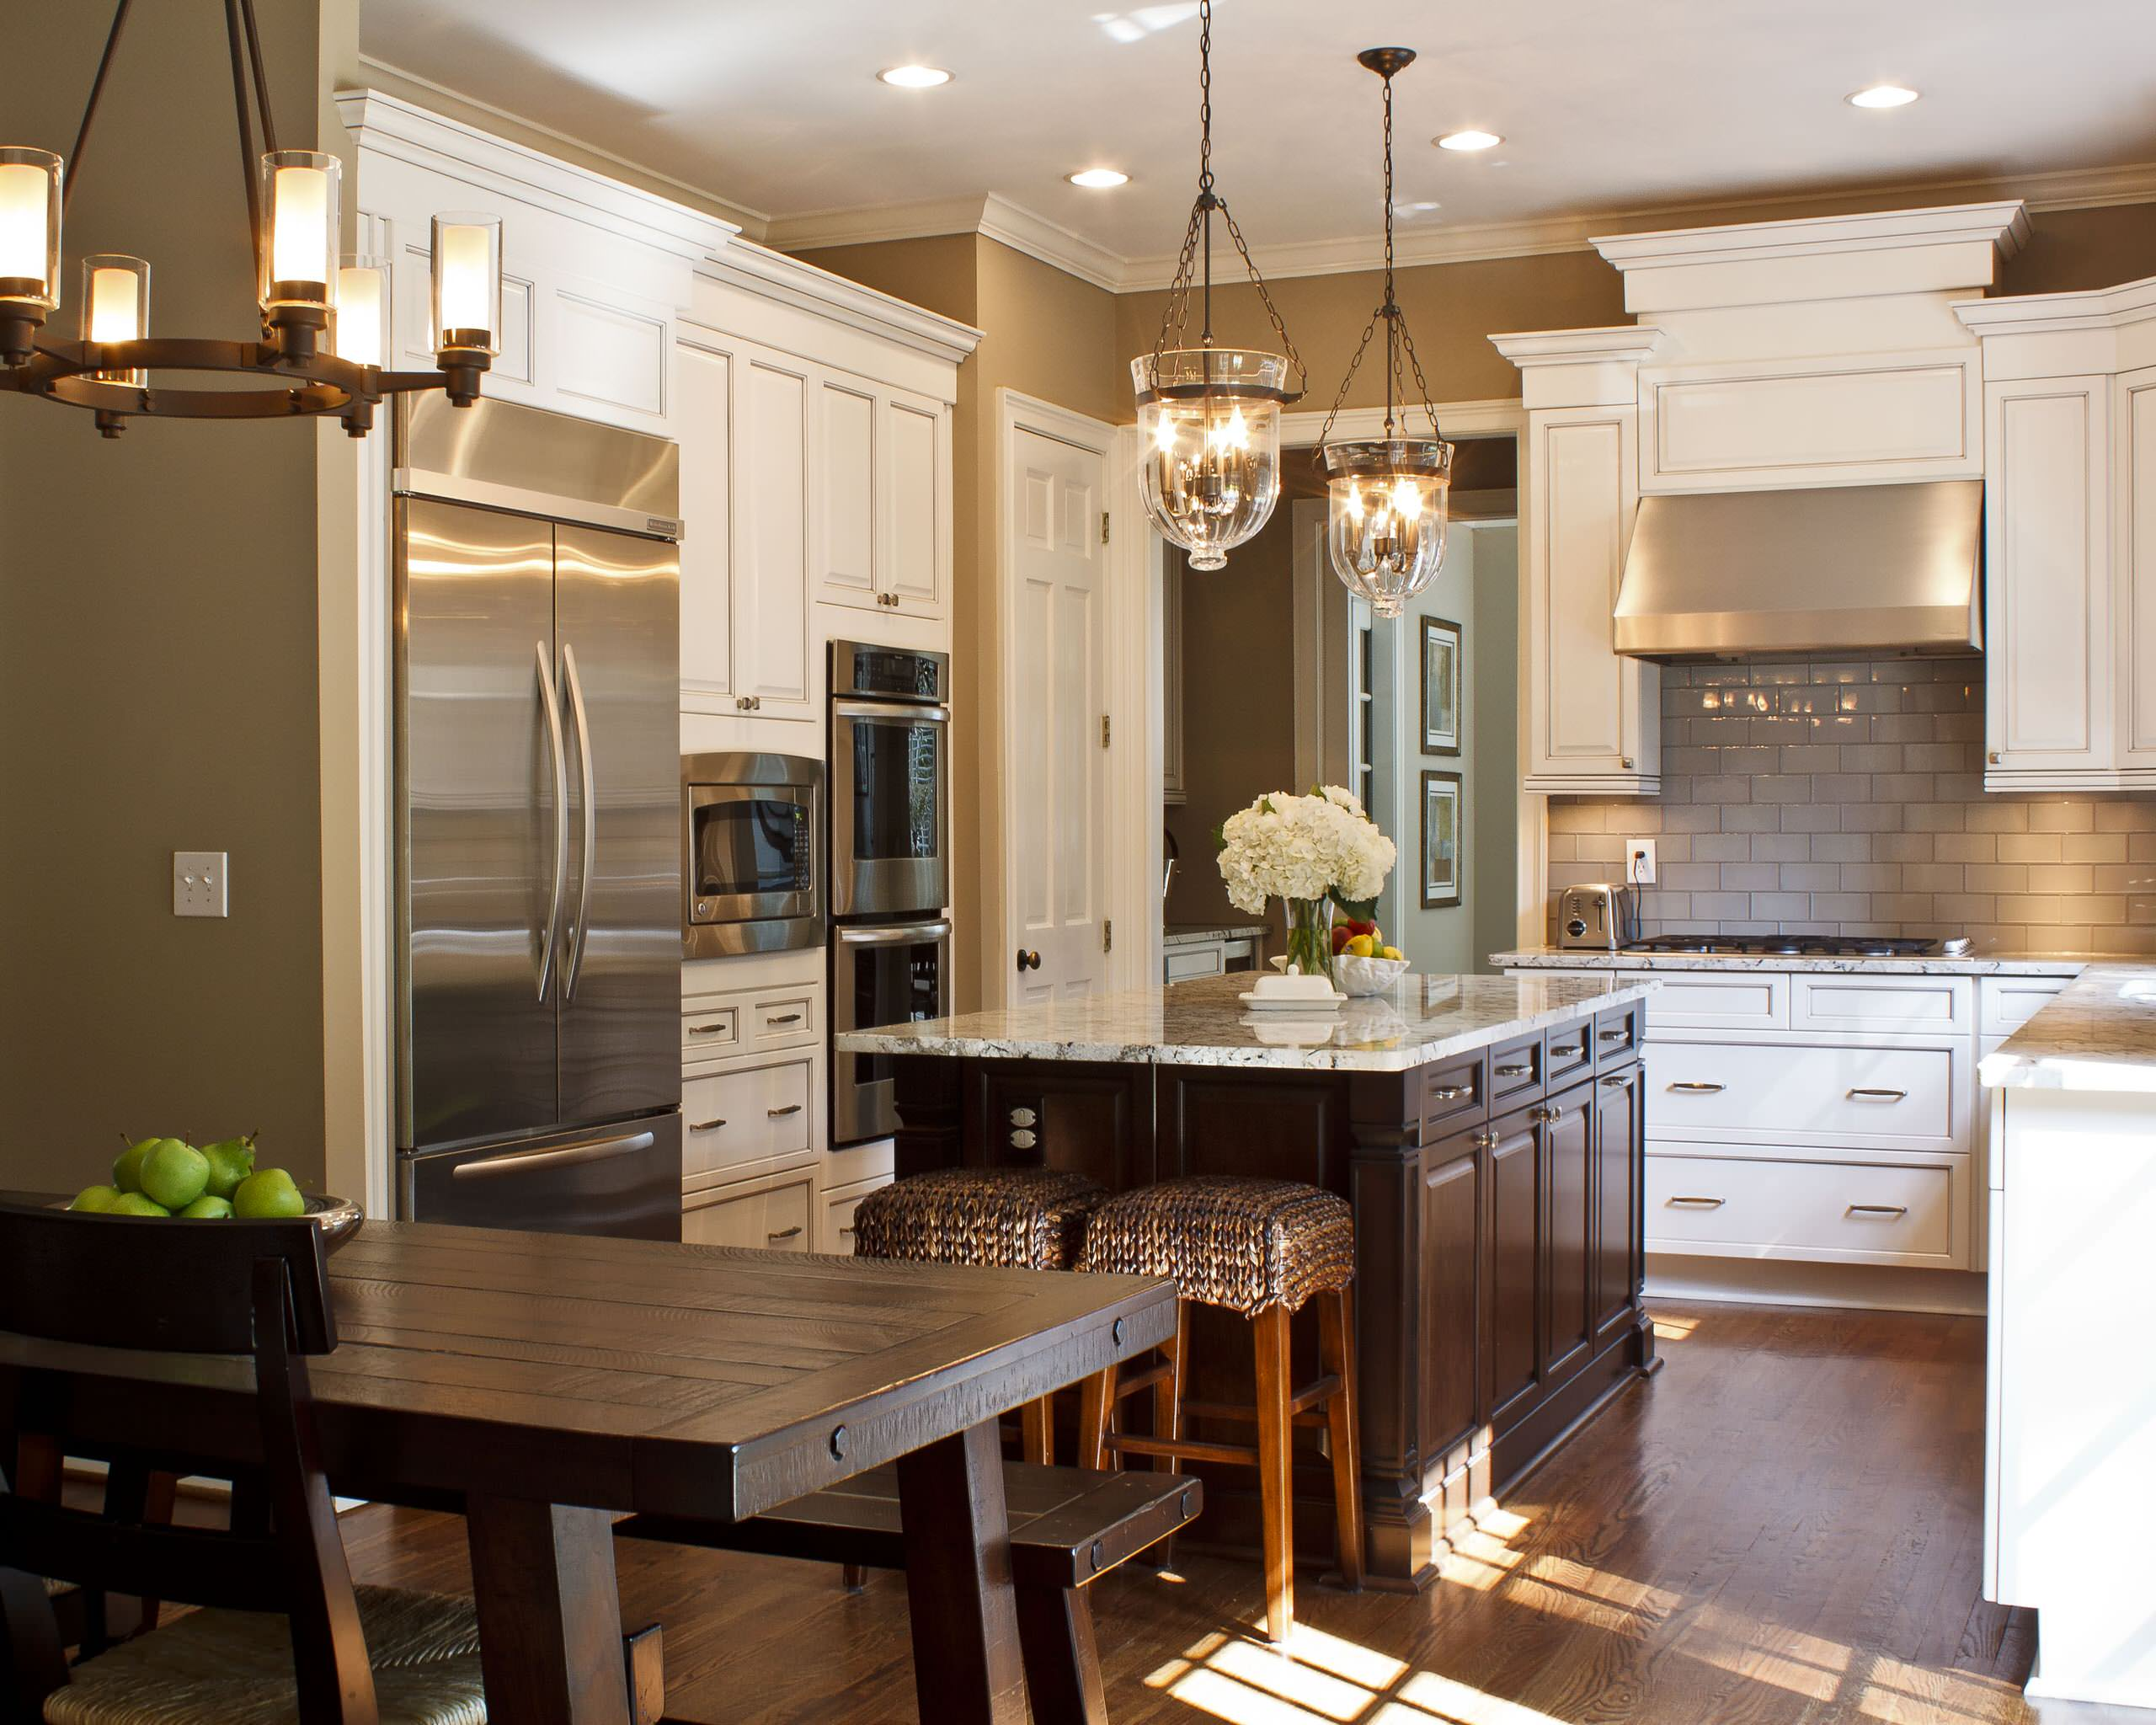 75 Beautiful Traditional Kitchen With Glass Tile Backsplash Pictures Ideas January 2021 Houzz